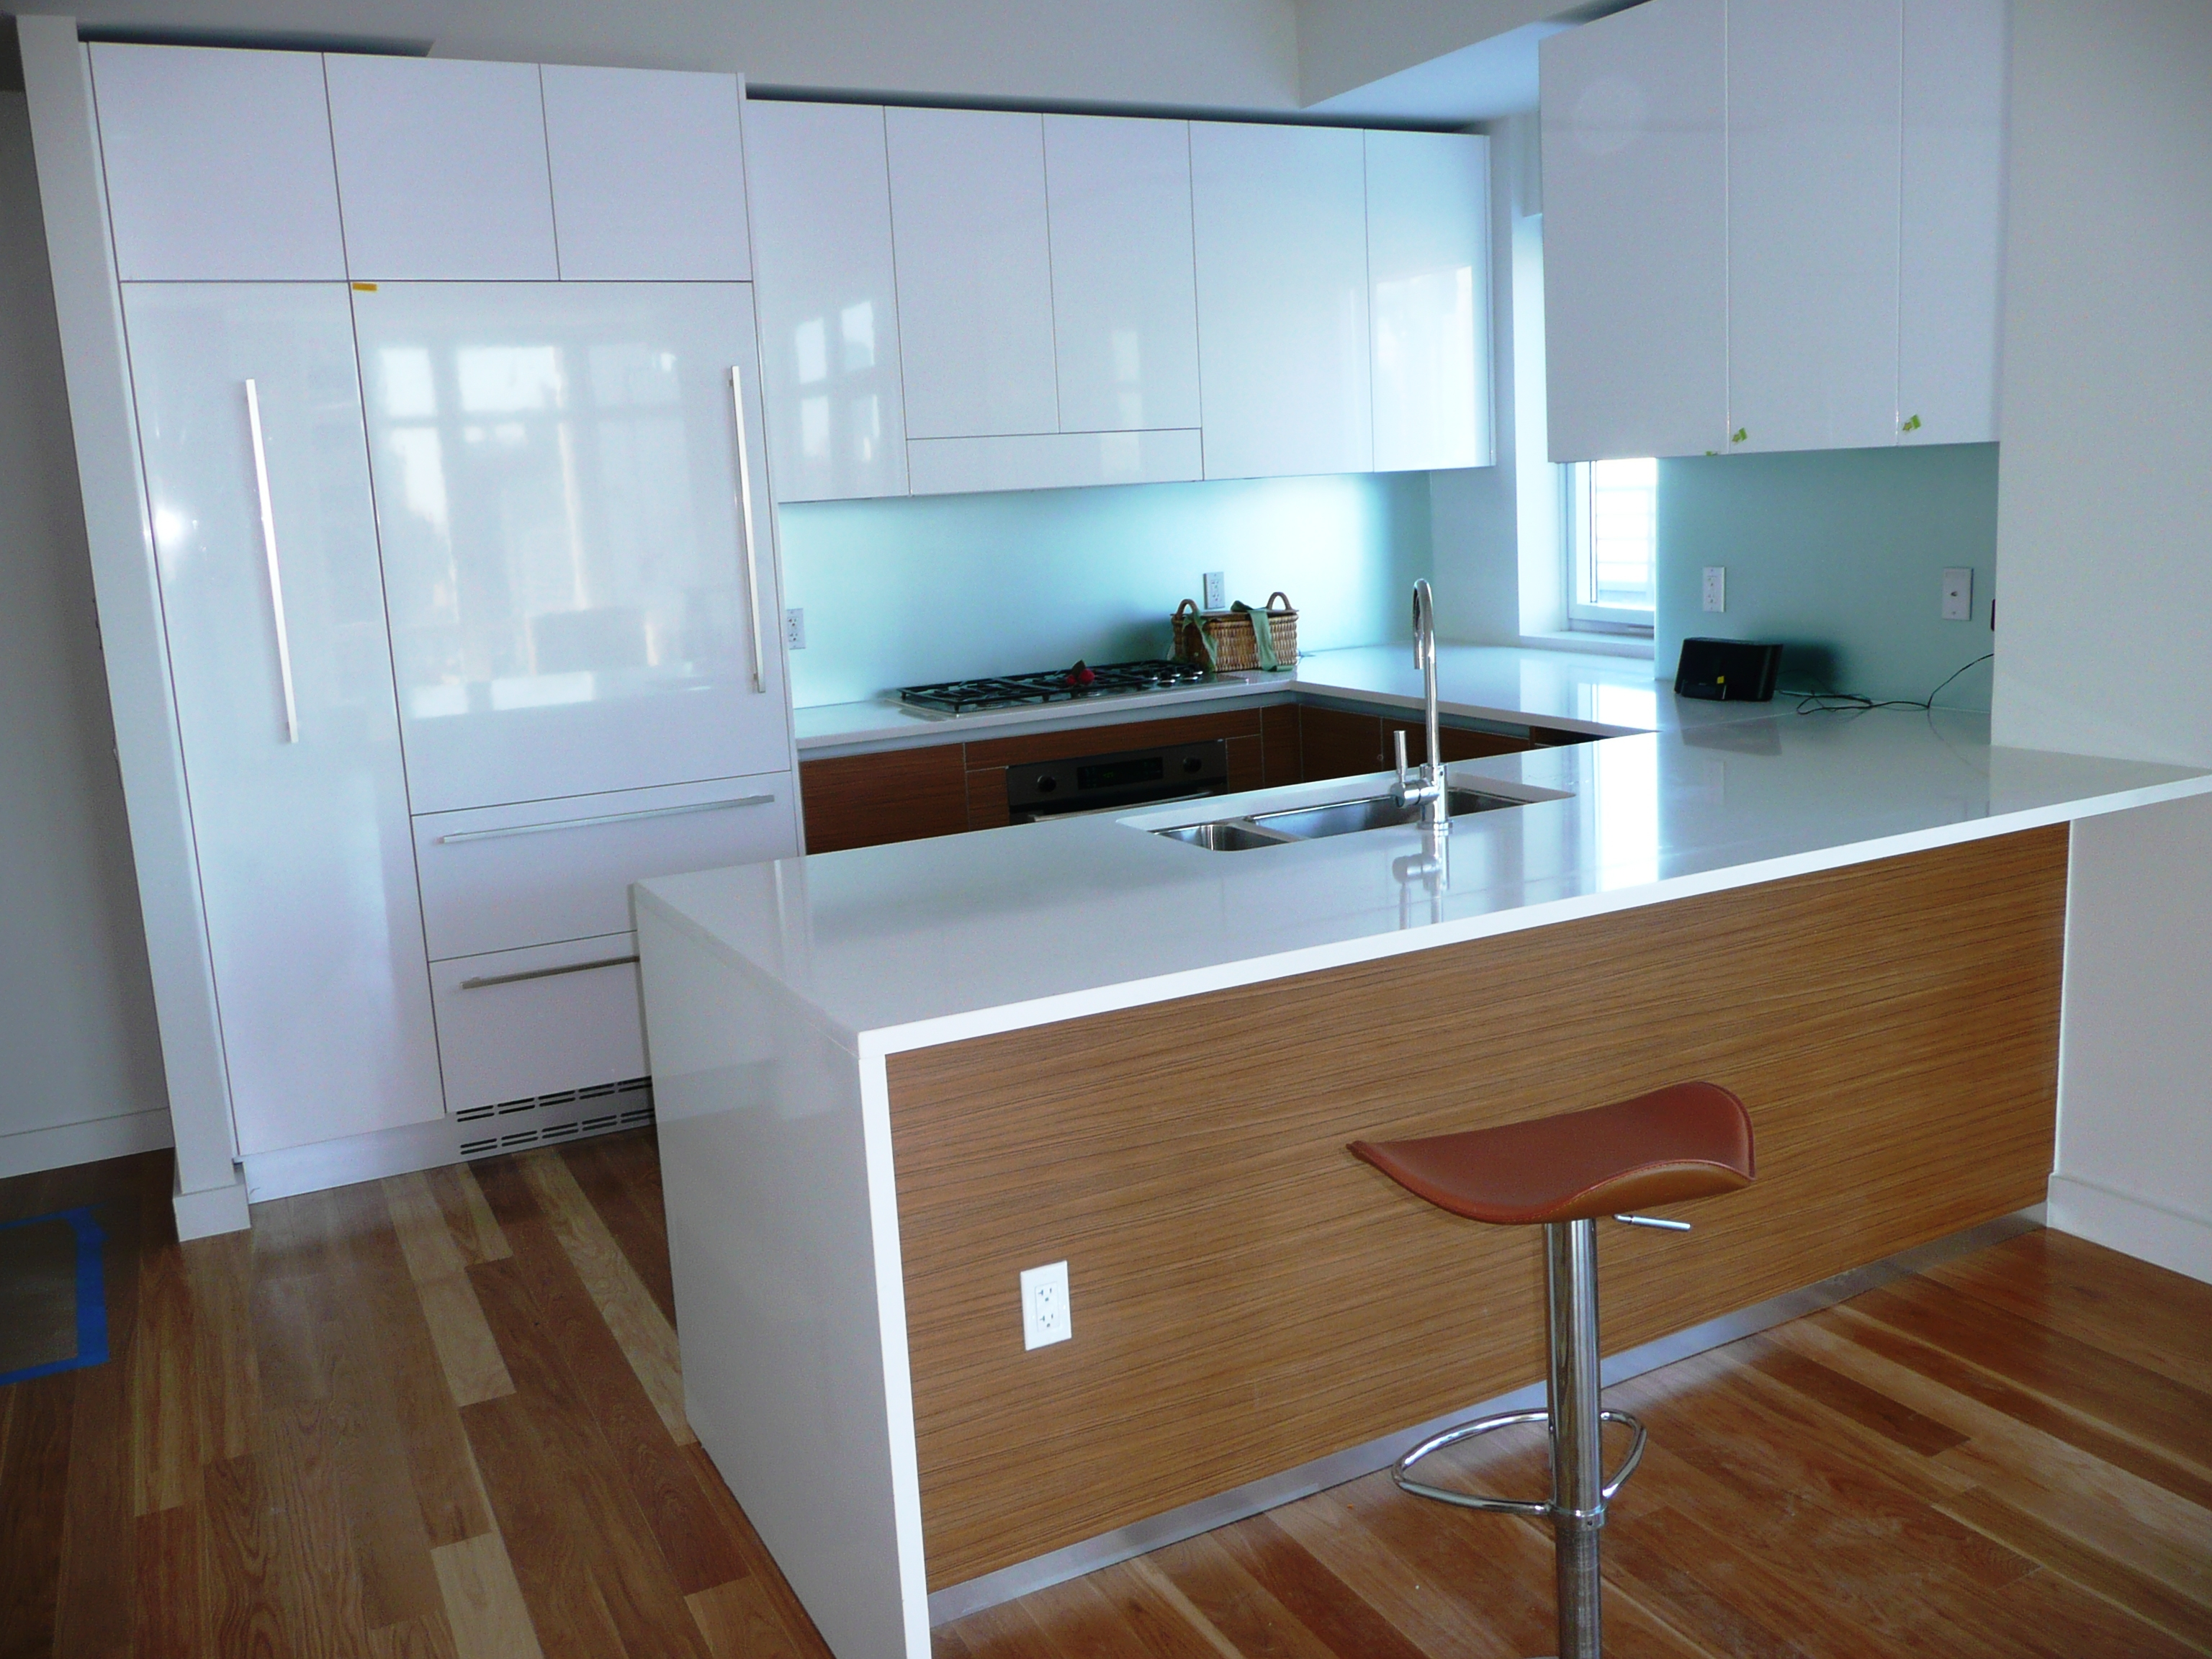 kitchen cabinets brooklyn ny modern kitchen cabinets brooklyn ny 28 kitchen cabinets brooklyn ny used kitchen cabinets